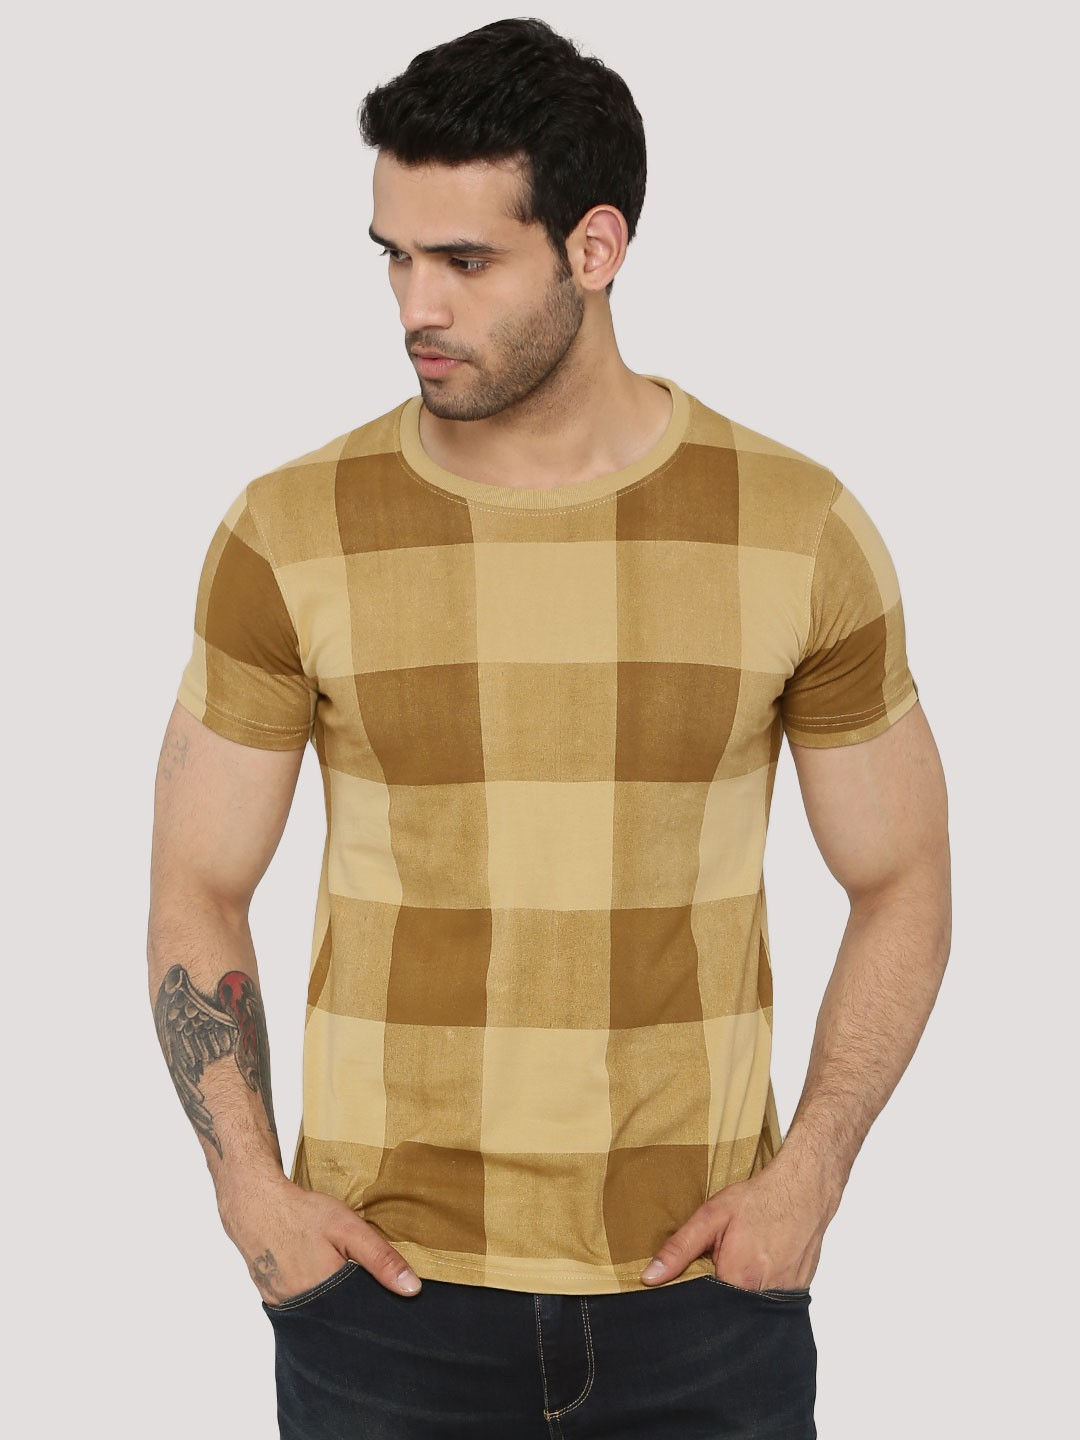 Buy Blotch Nude Check T-Shirt For Men Online In India-5675